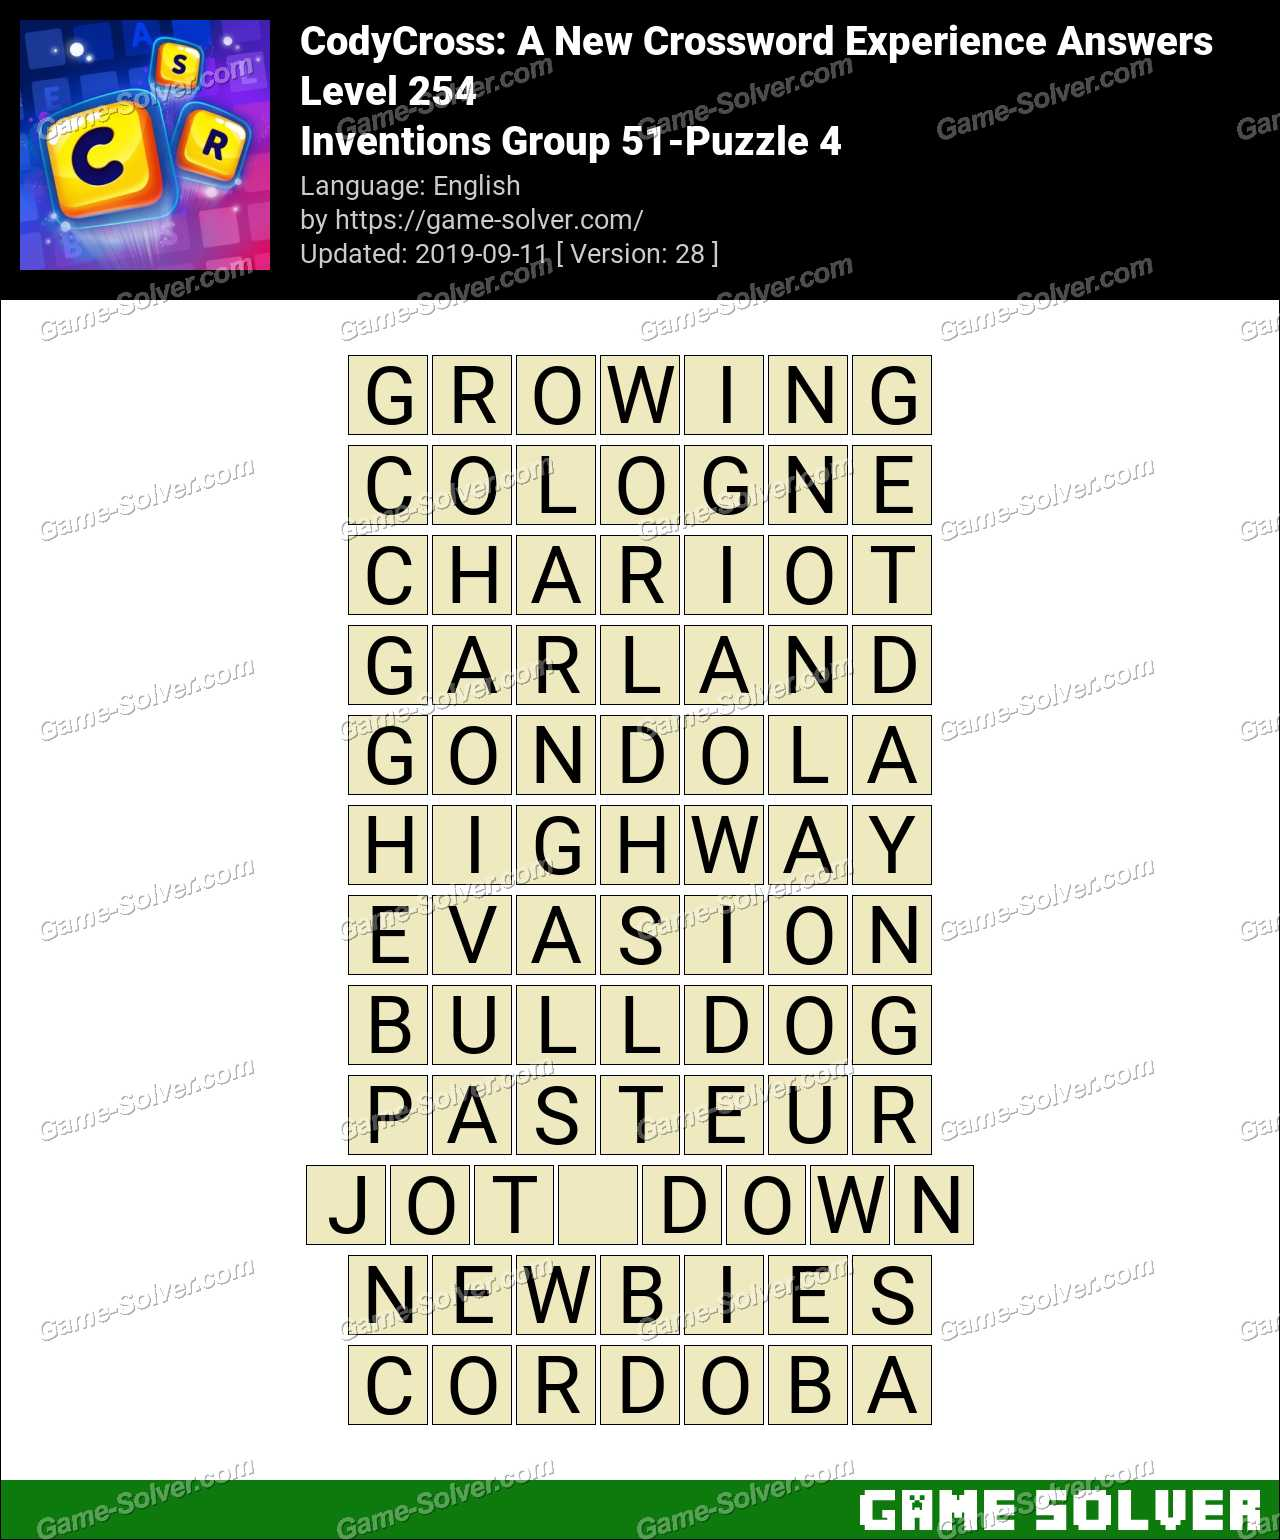 CodyCross Inventions Group 51-Puzzle 4 Answers